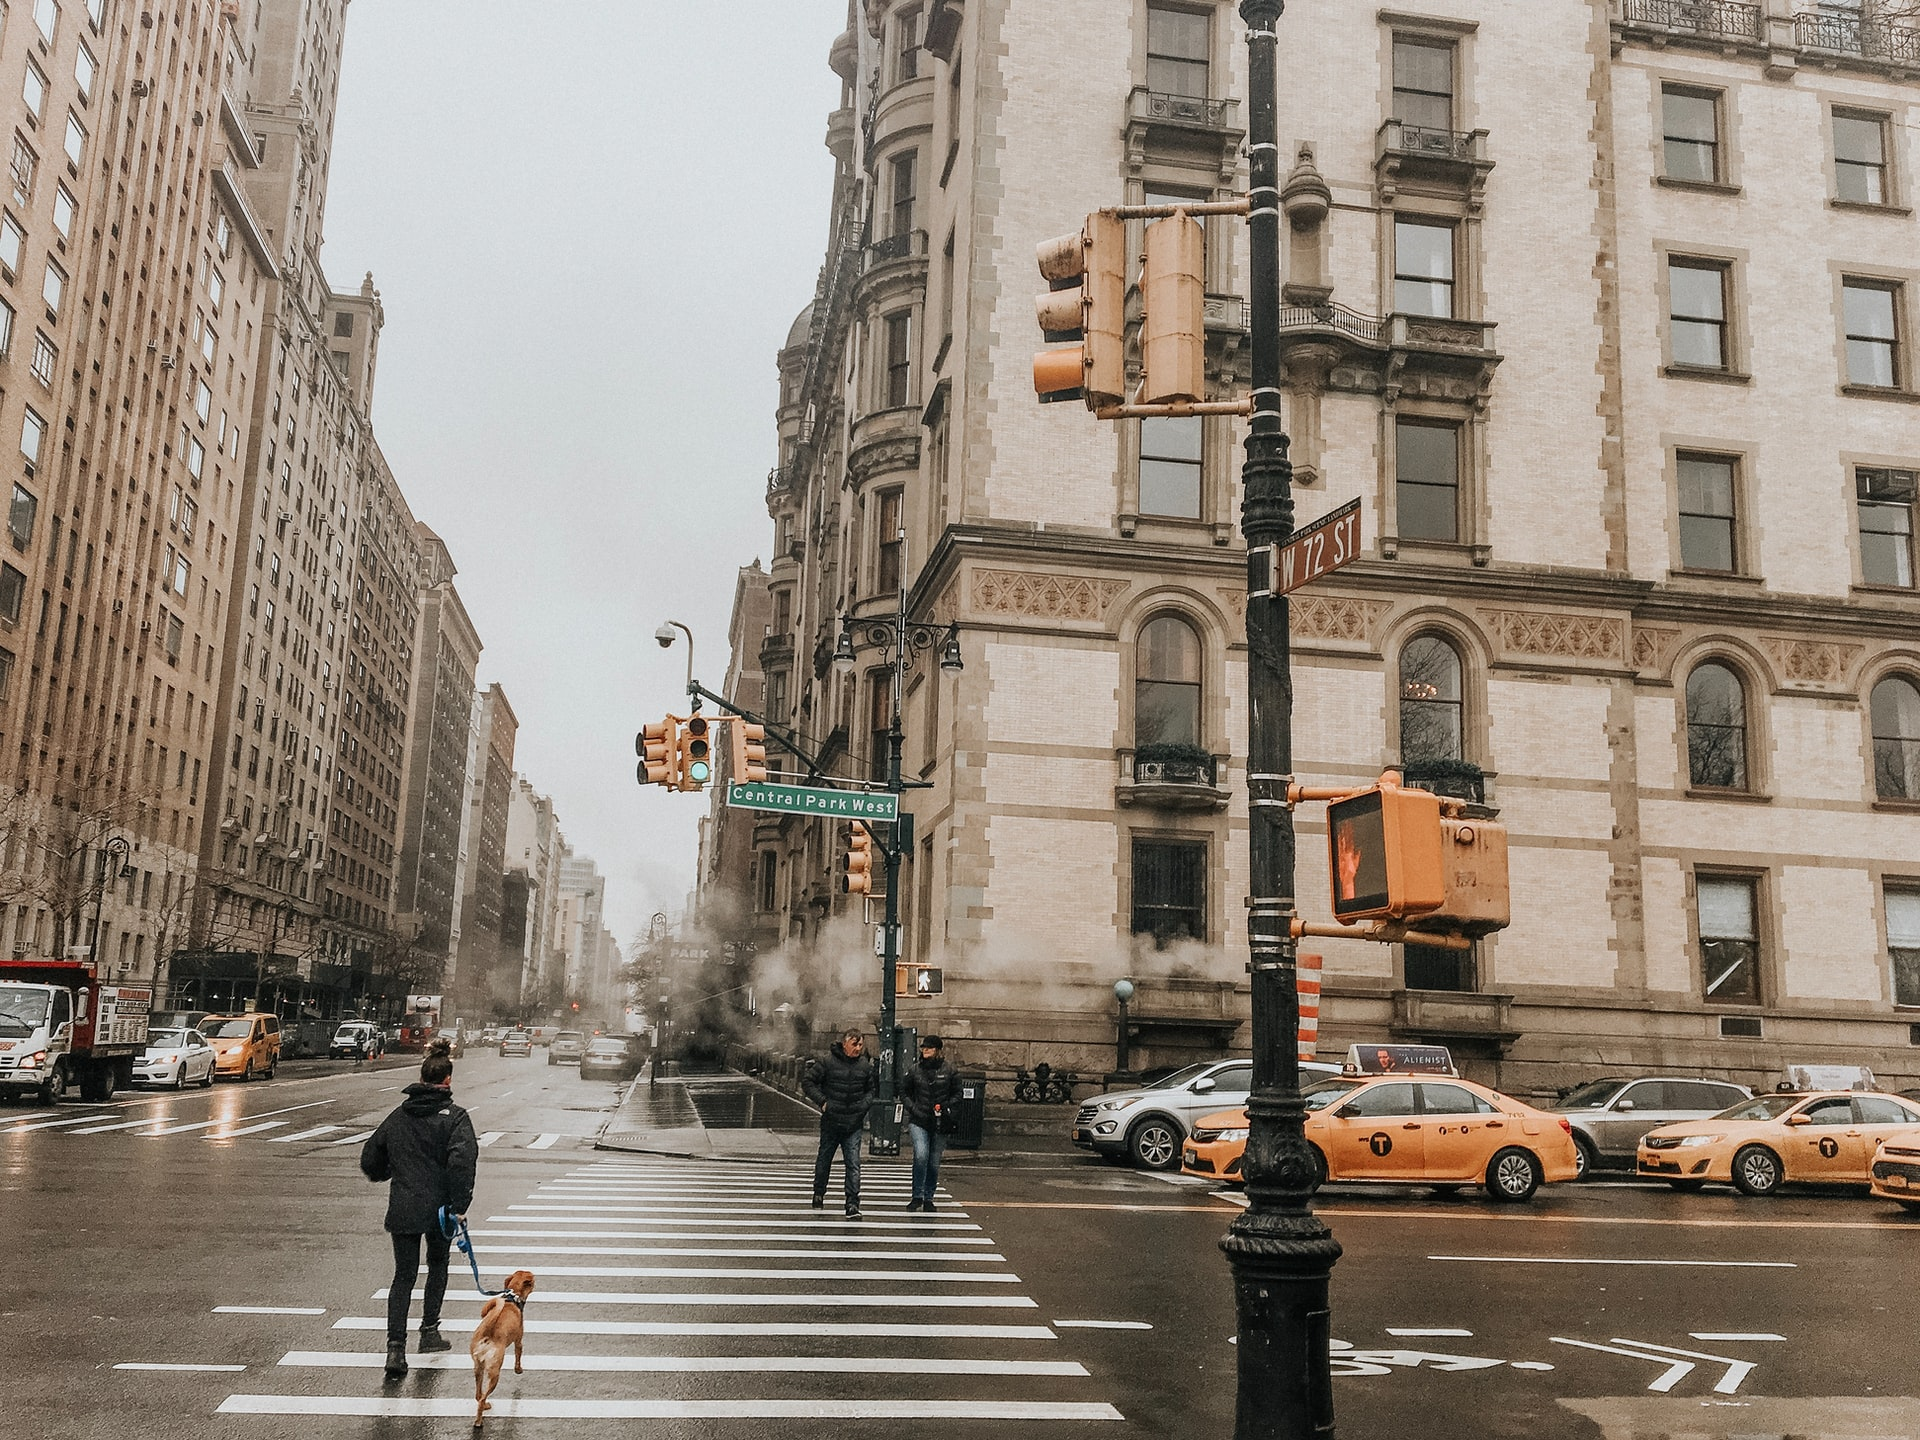 A rainy day in the Upper East Side